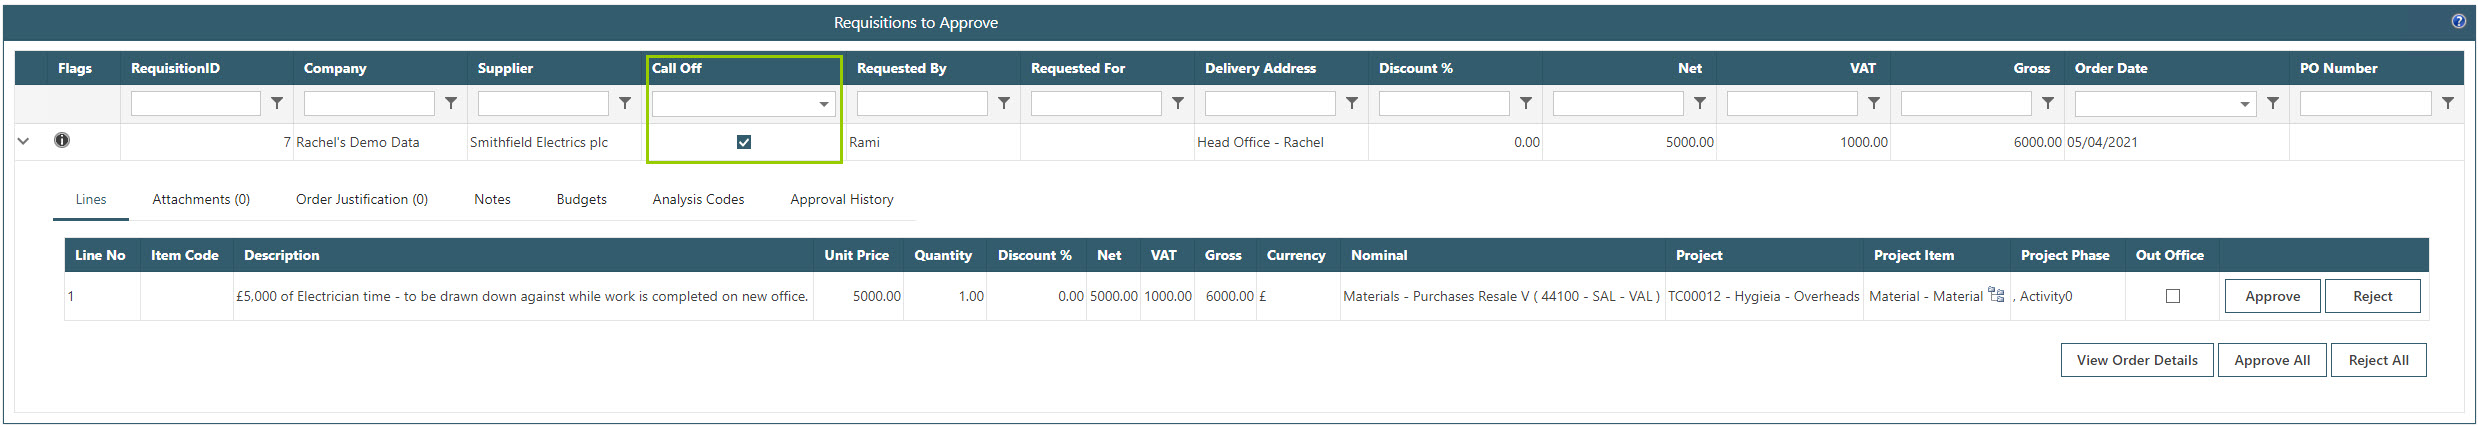 Sicon WAP Purchase Requisitions Help and User Guide - Requisition HUG Section 11.4 Image 1